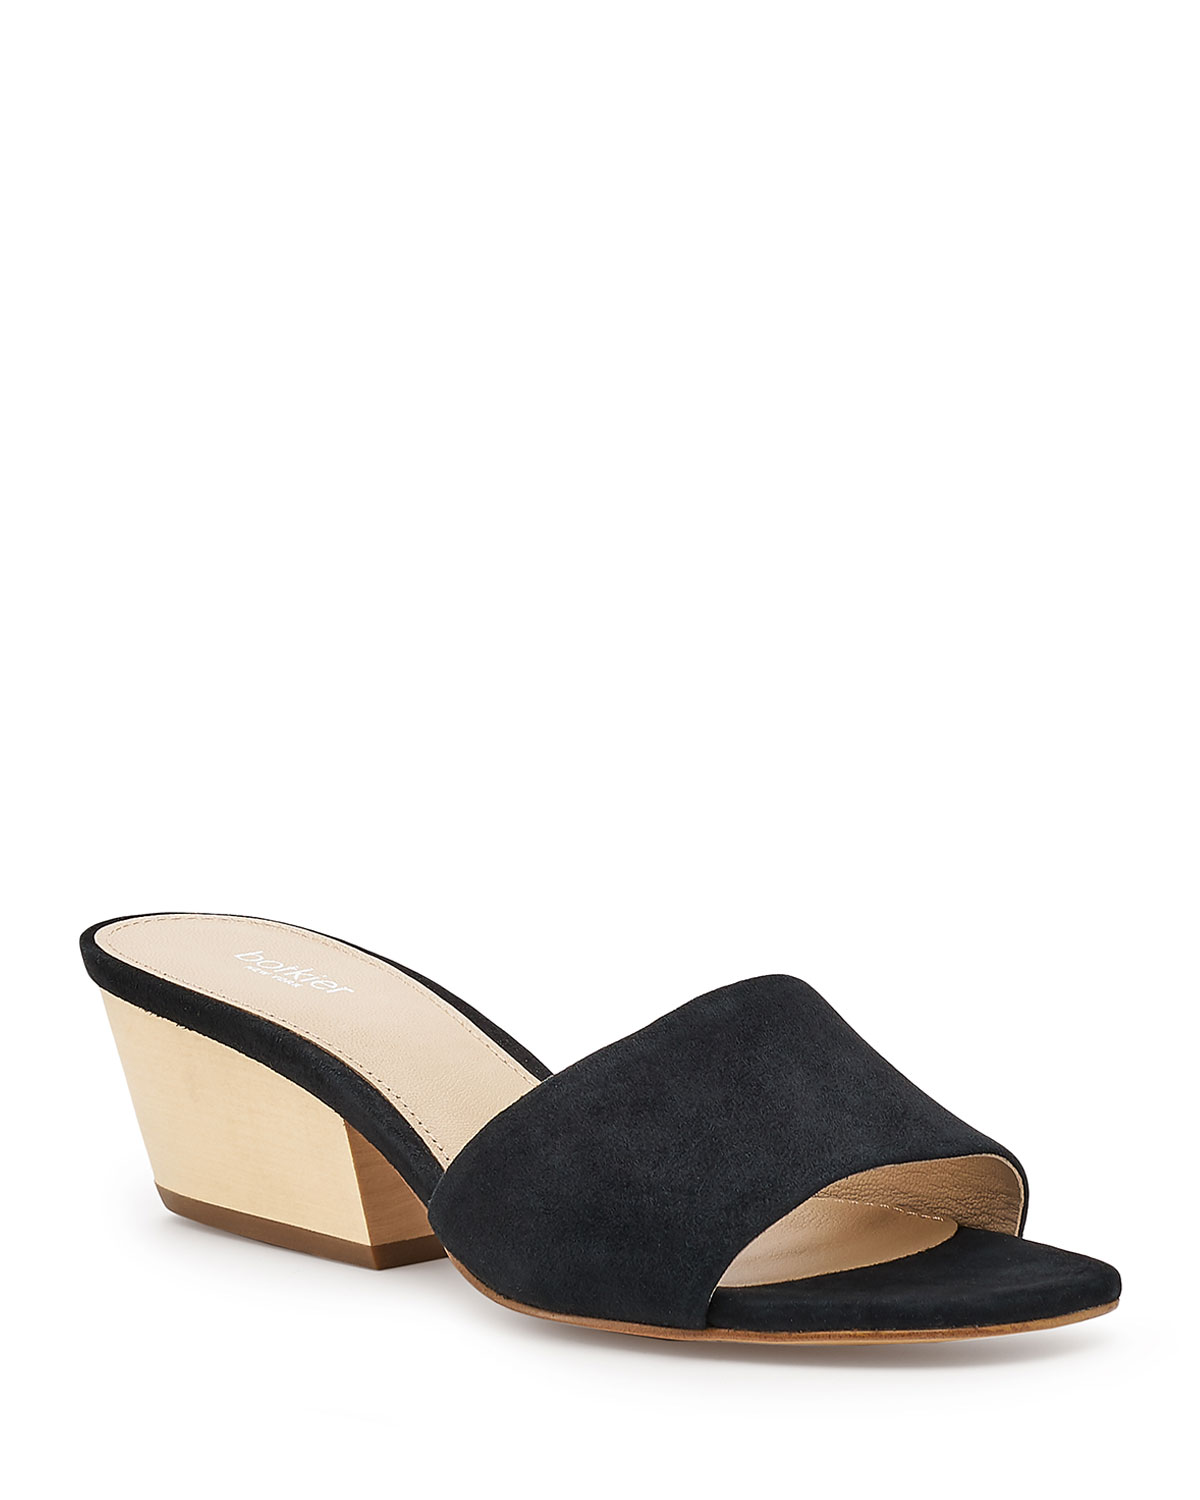 Carlie Slide Suede Sandals